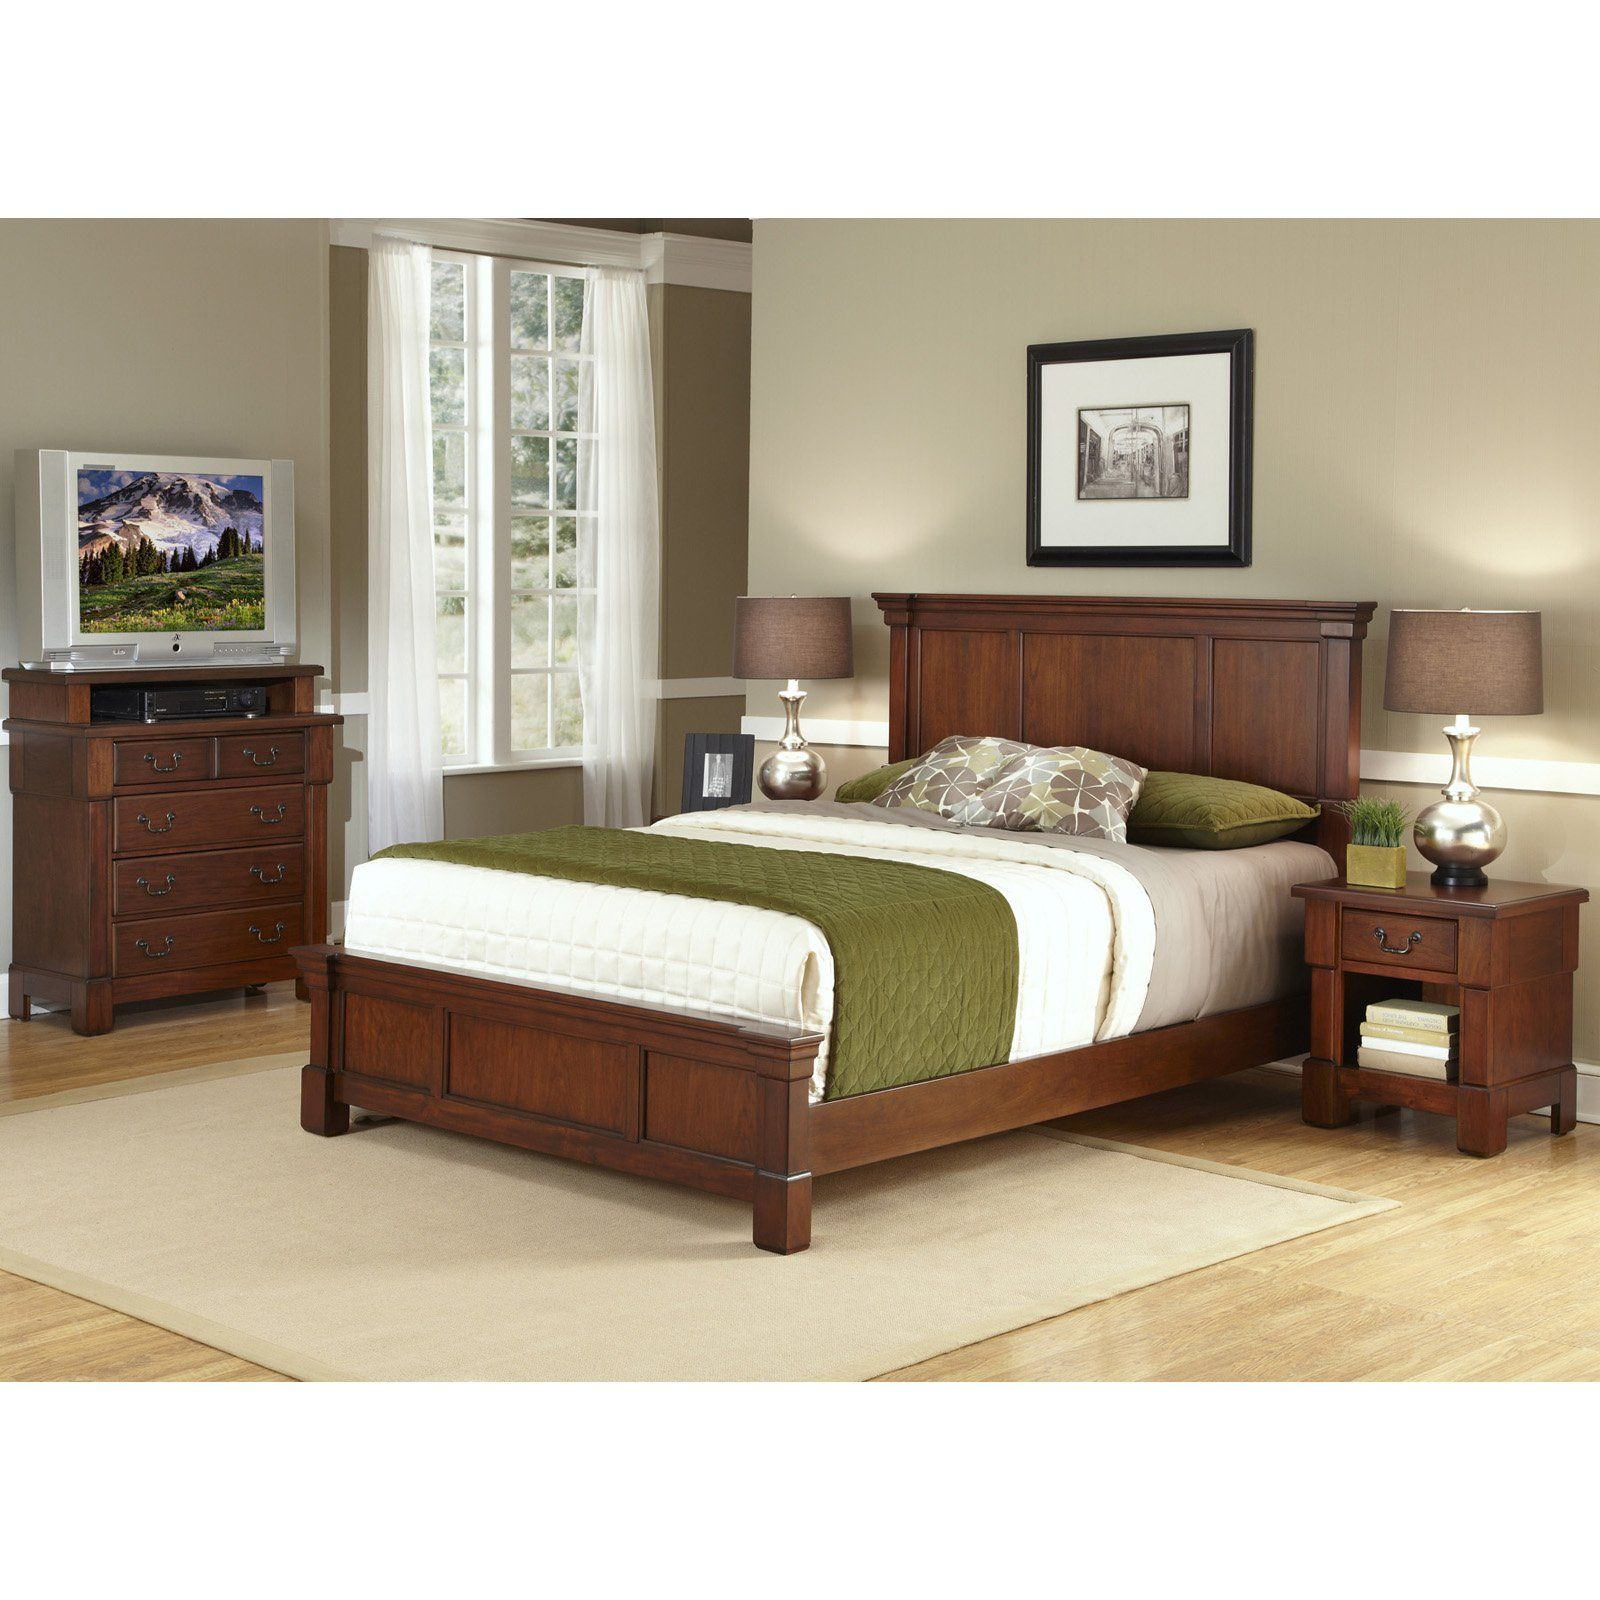 Home styles aspen low profile bed from hayneedle